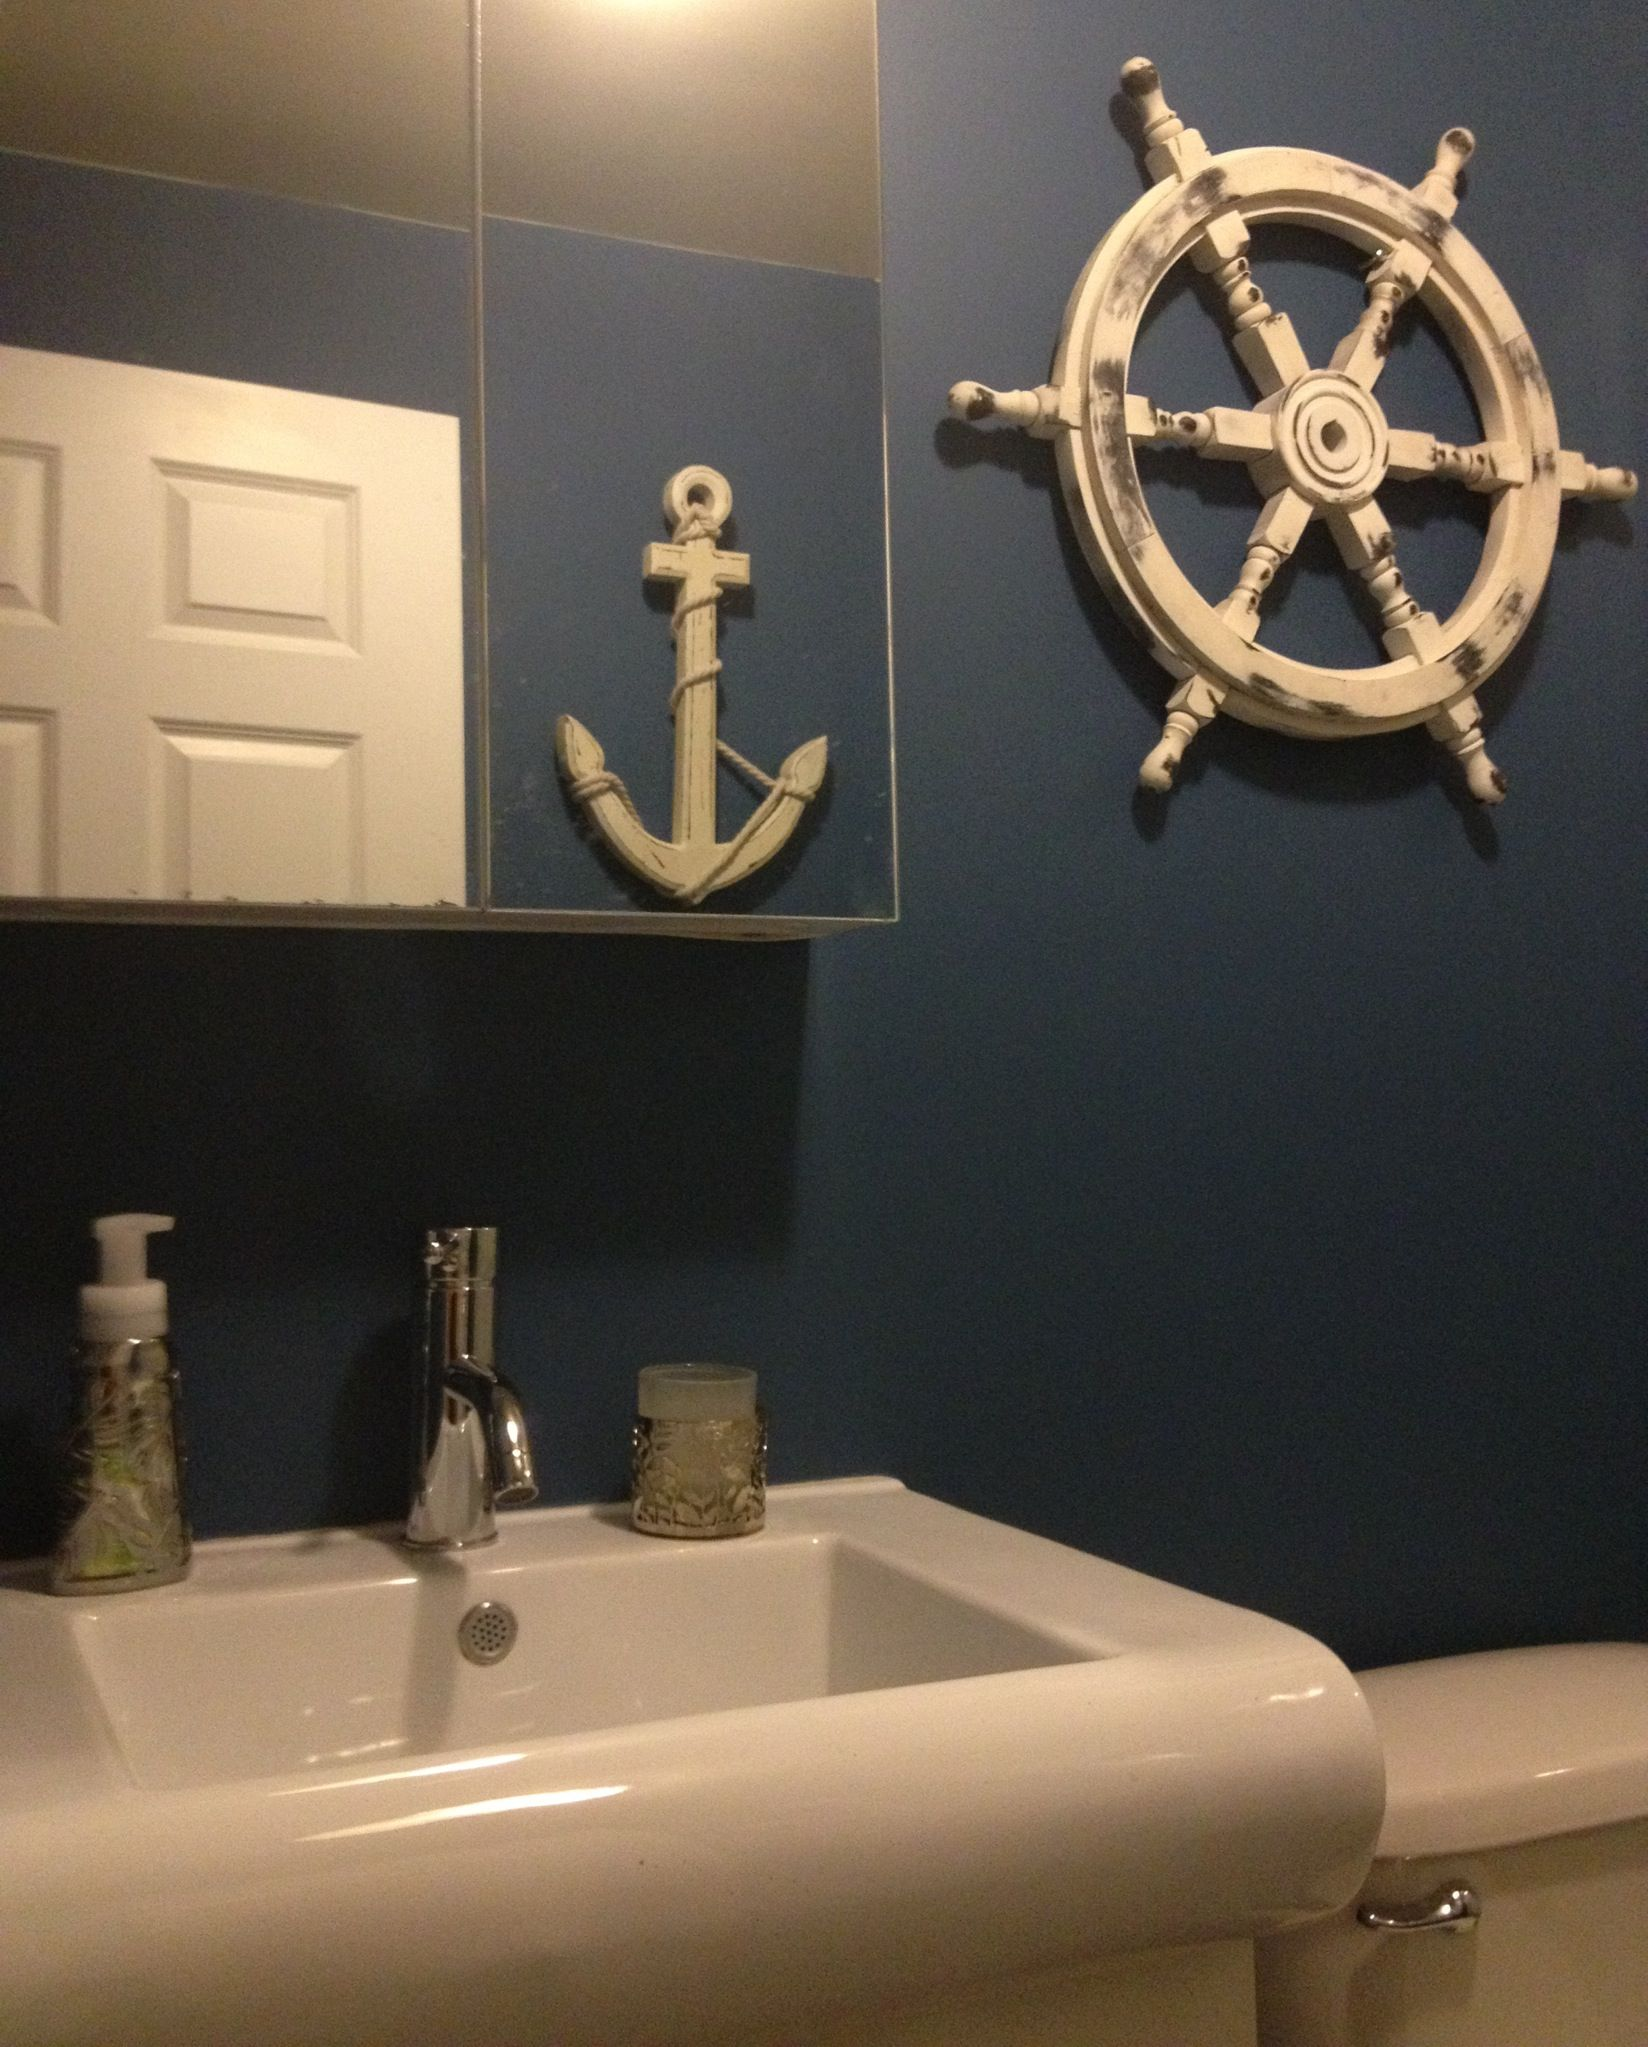 Kids Ocean Bathroom Decor Our New Sailor Bathroom Inspired By My Father Captain